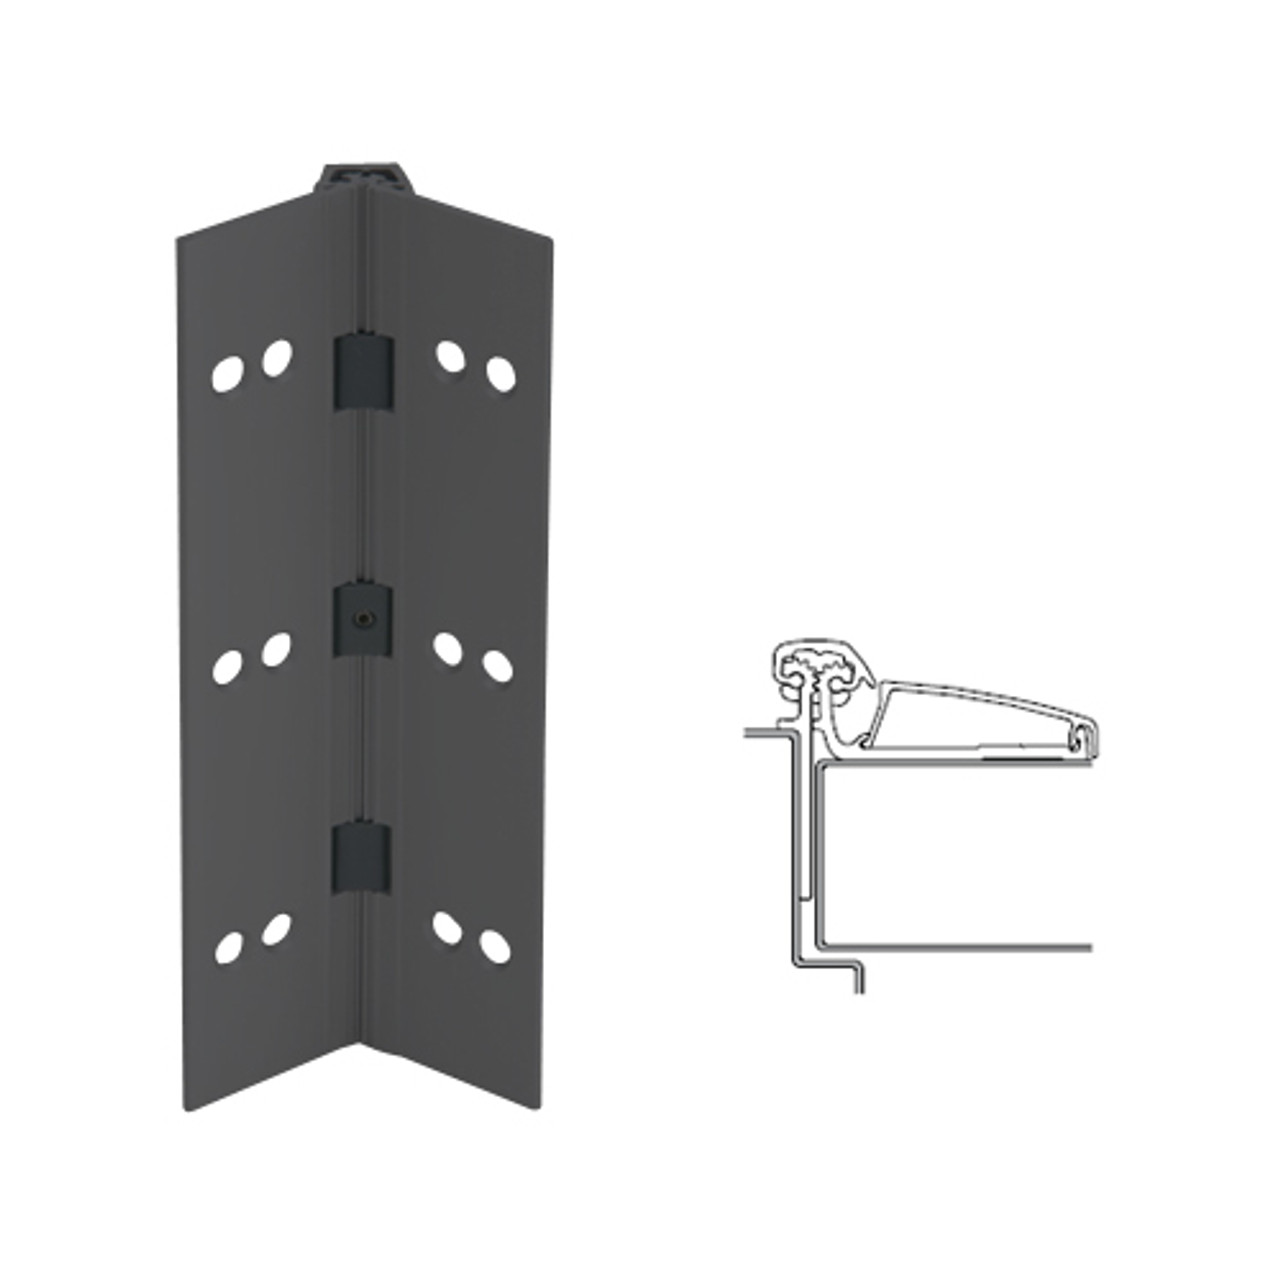 045XY-315AN-83-TFWD IVES Adjustable Half Surface Continuous Geared Hinges with Thread Forming Screws in Anodized Black